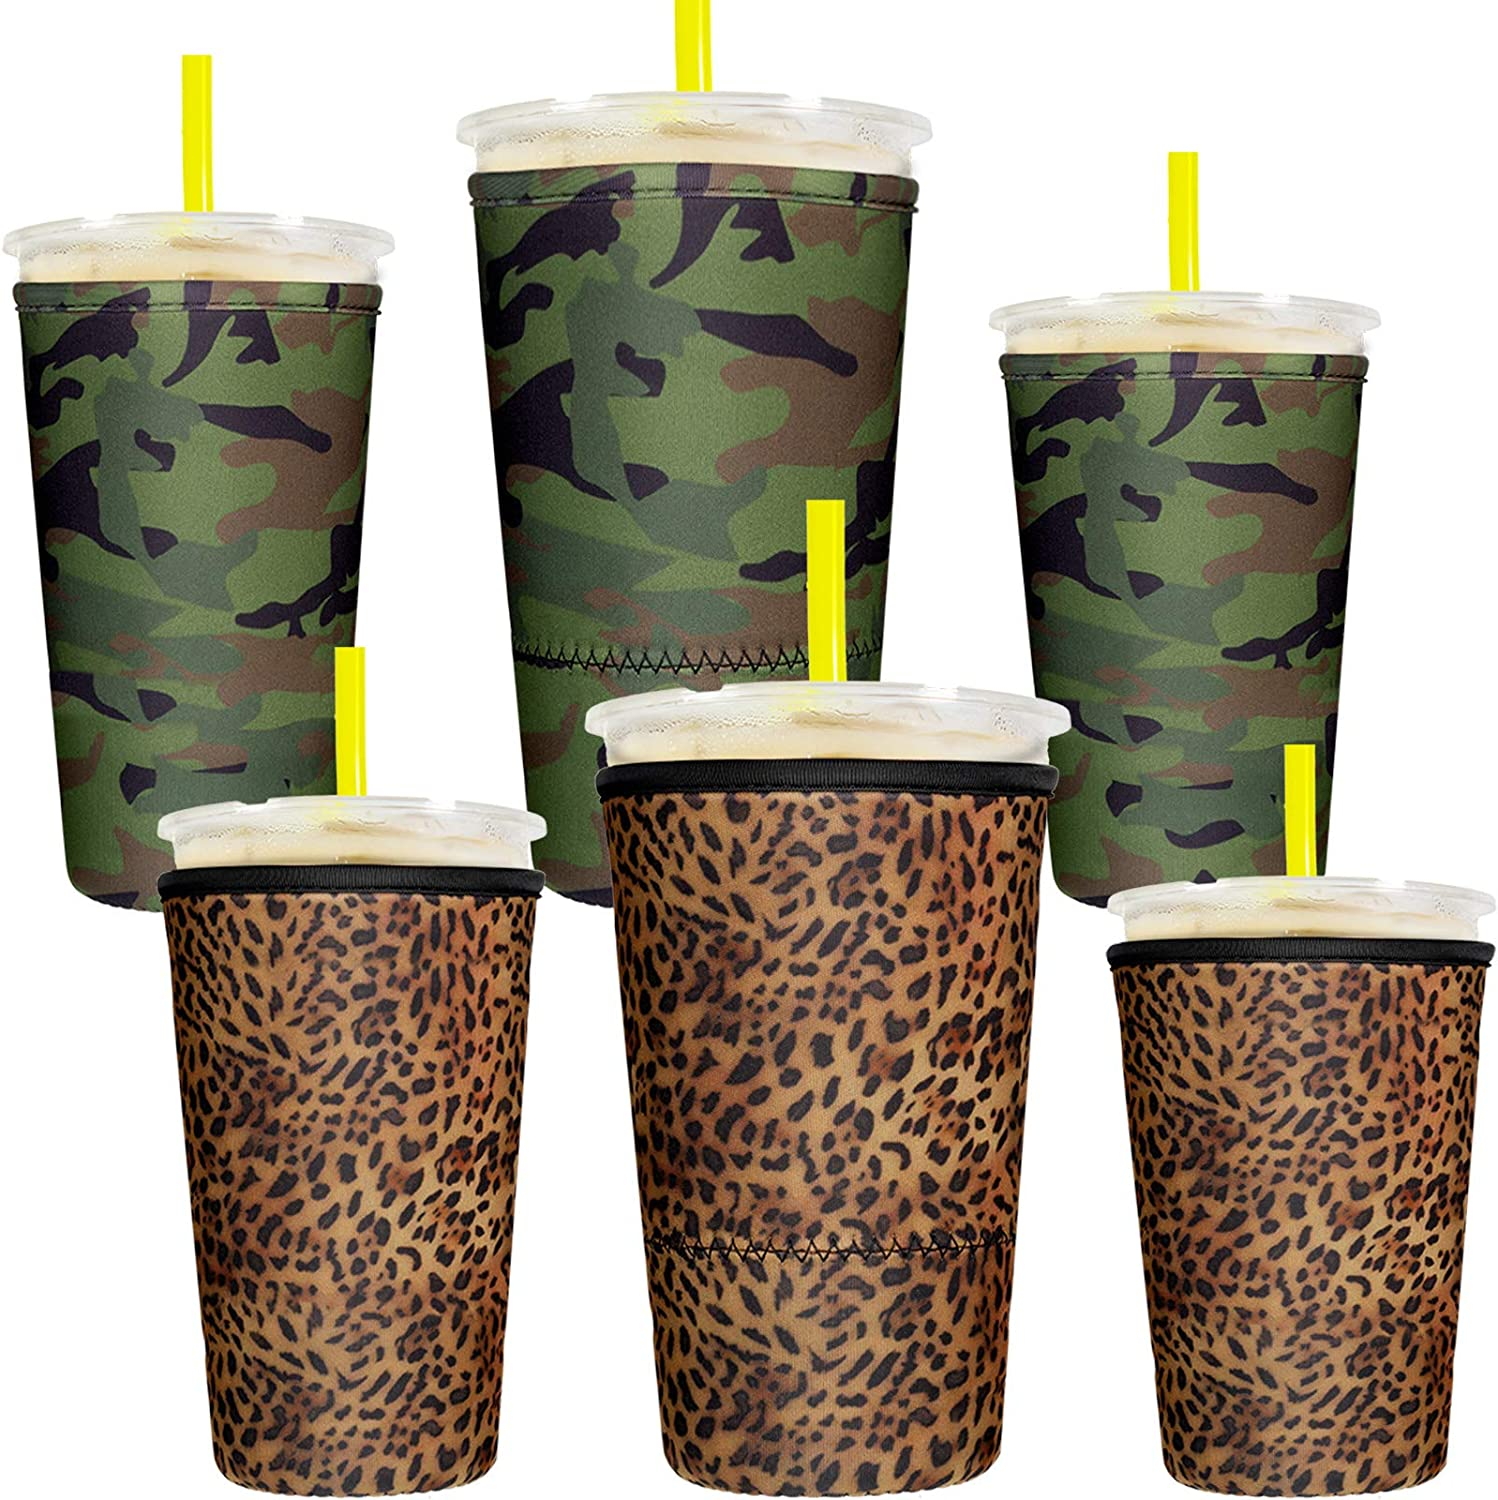 6 Pieces Reusable Coffee Cup Sleeve Neoprene Cup Cover Insulated Cup Holder Camouflage and Leopard Print Insulated Sleeves Drinks Holder for 10 to 32 oz Cold Hot Drink Beverages Cup Bottle